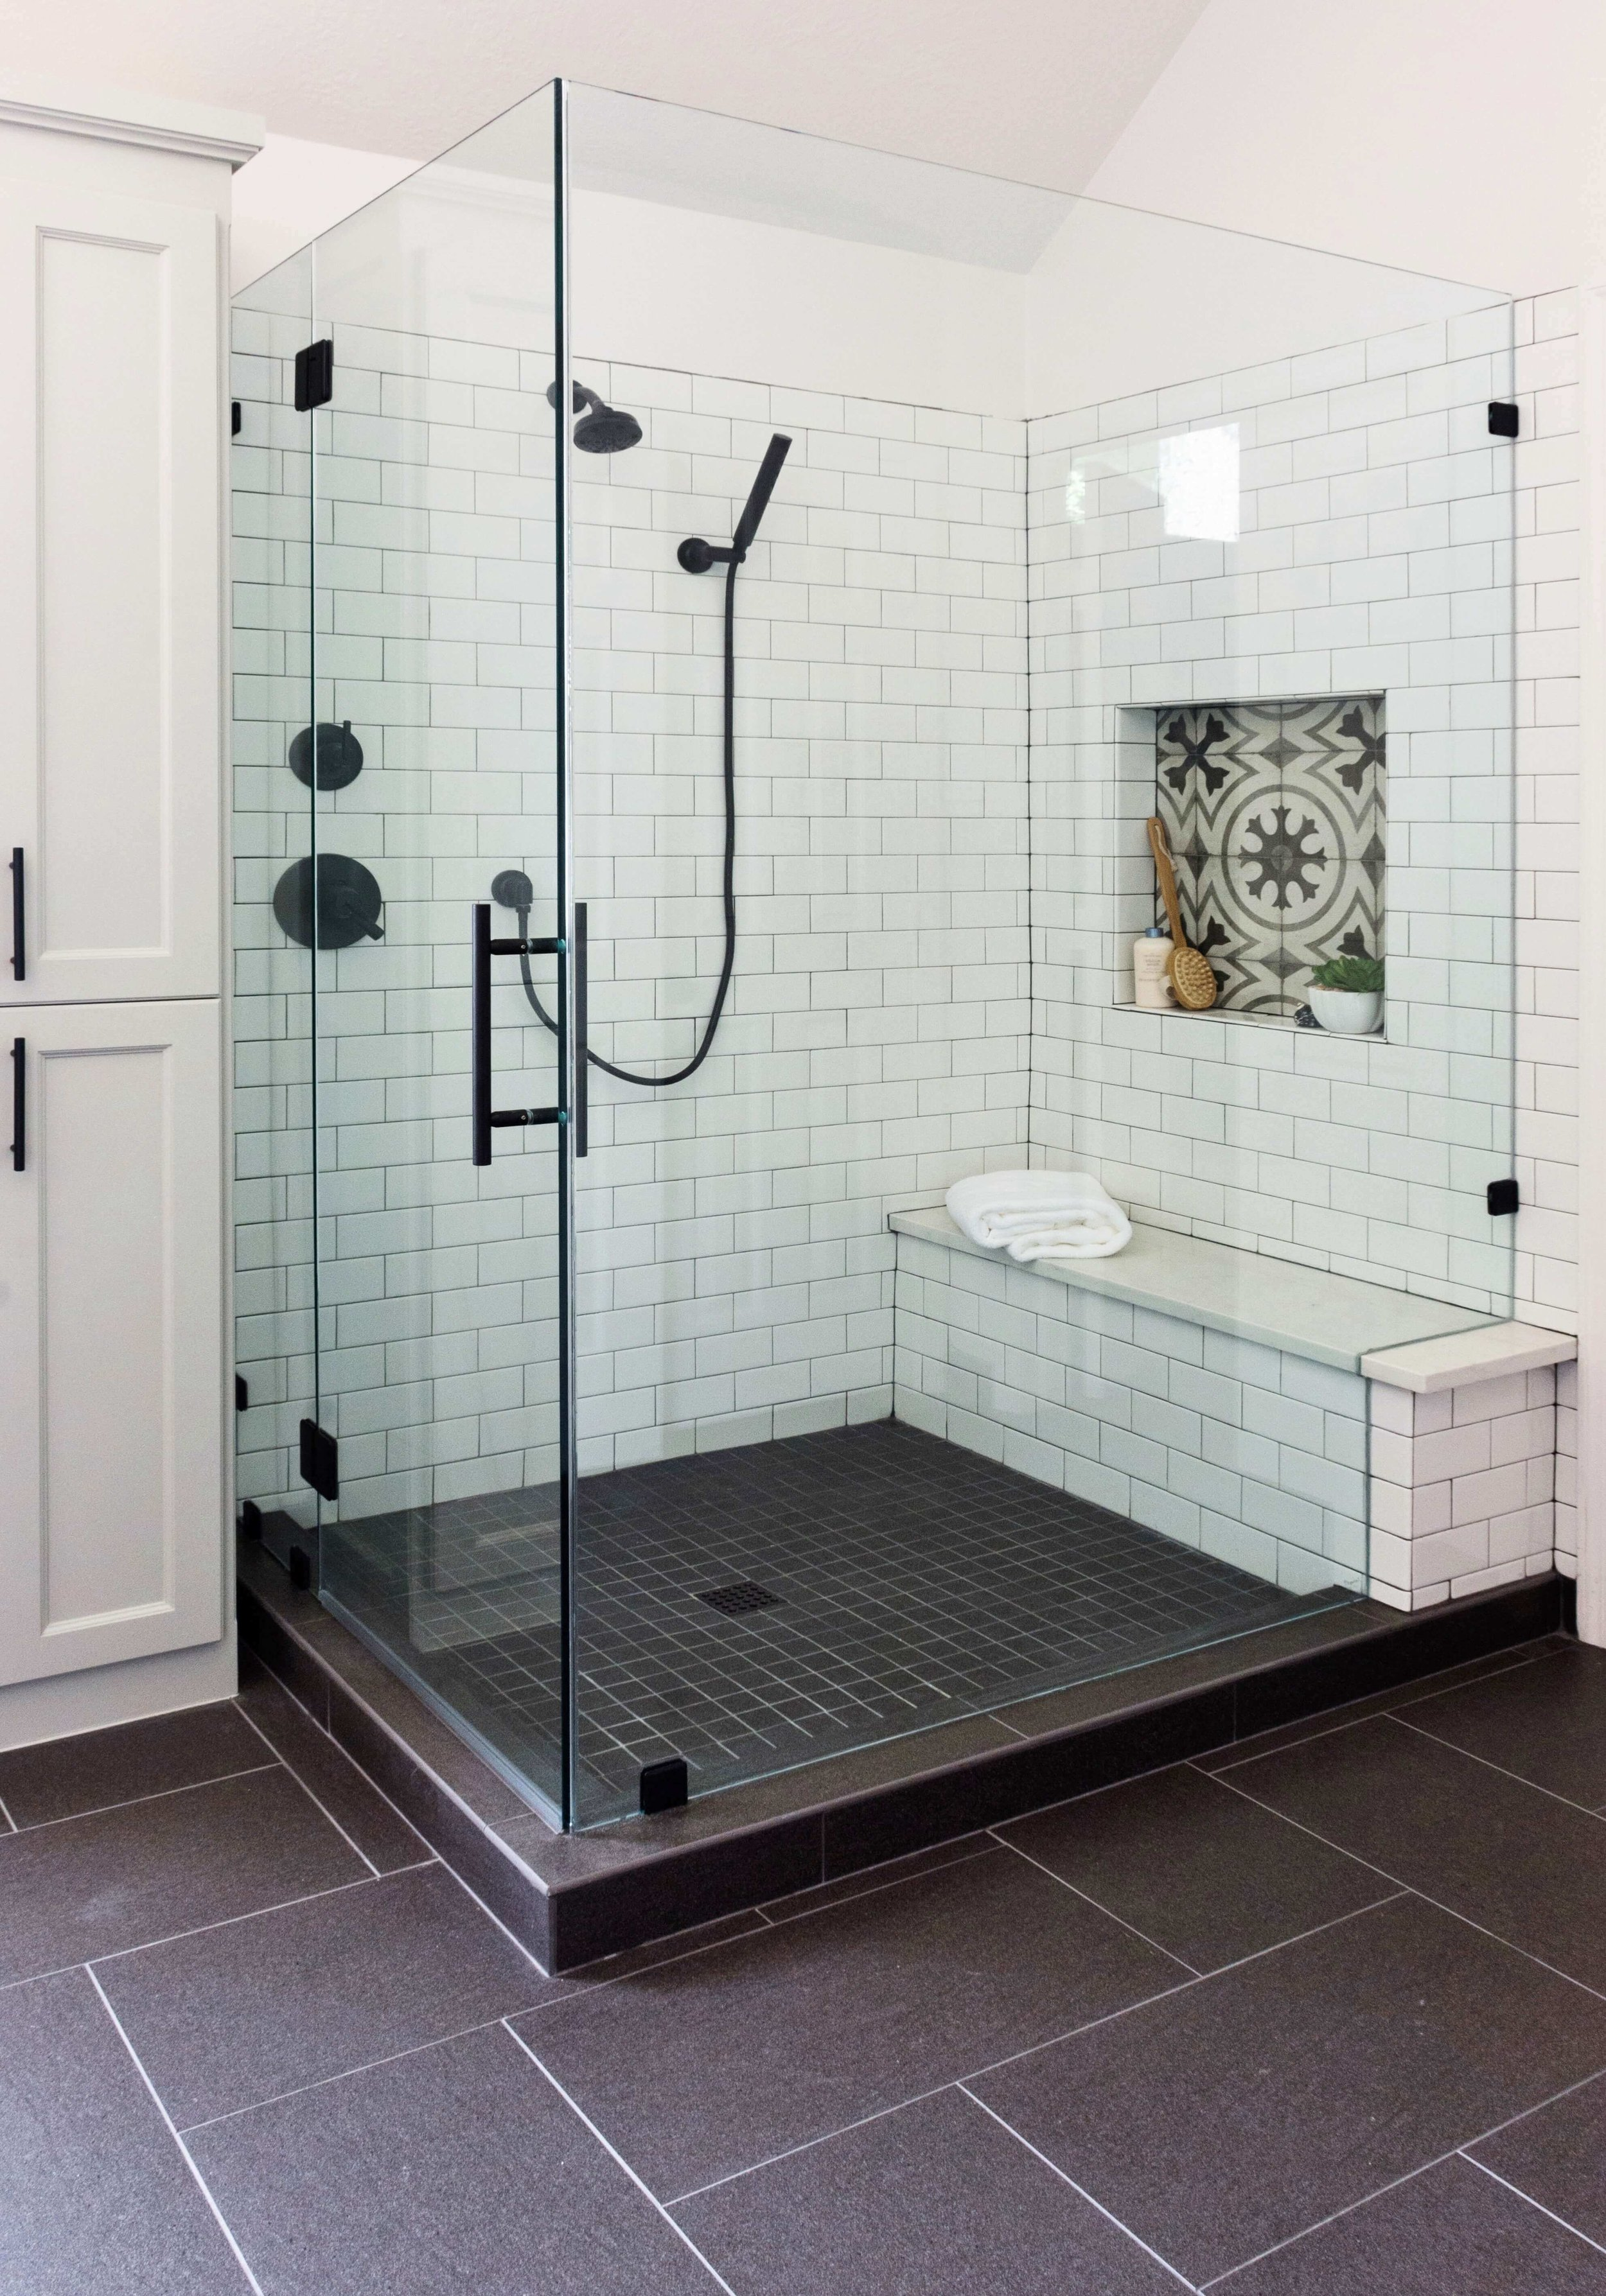 Bathroom shower curb in tile material that matches bathroom floor with frameless glass shower. Carla Aston, Designer | Charles Behrend, Photographer #shower #showertile #bathroomdesign